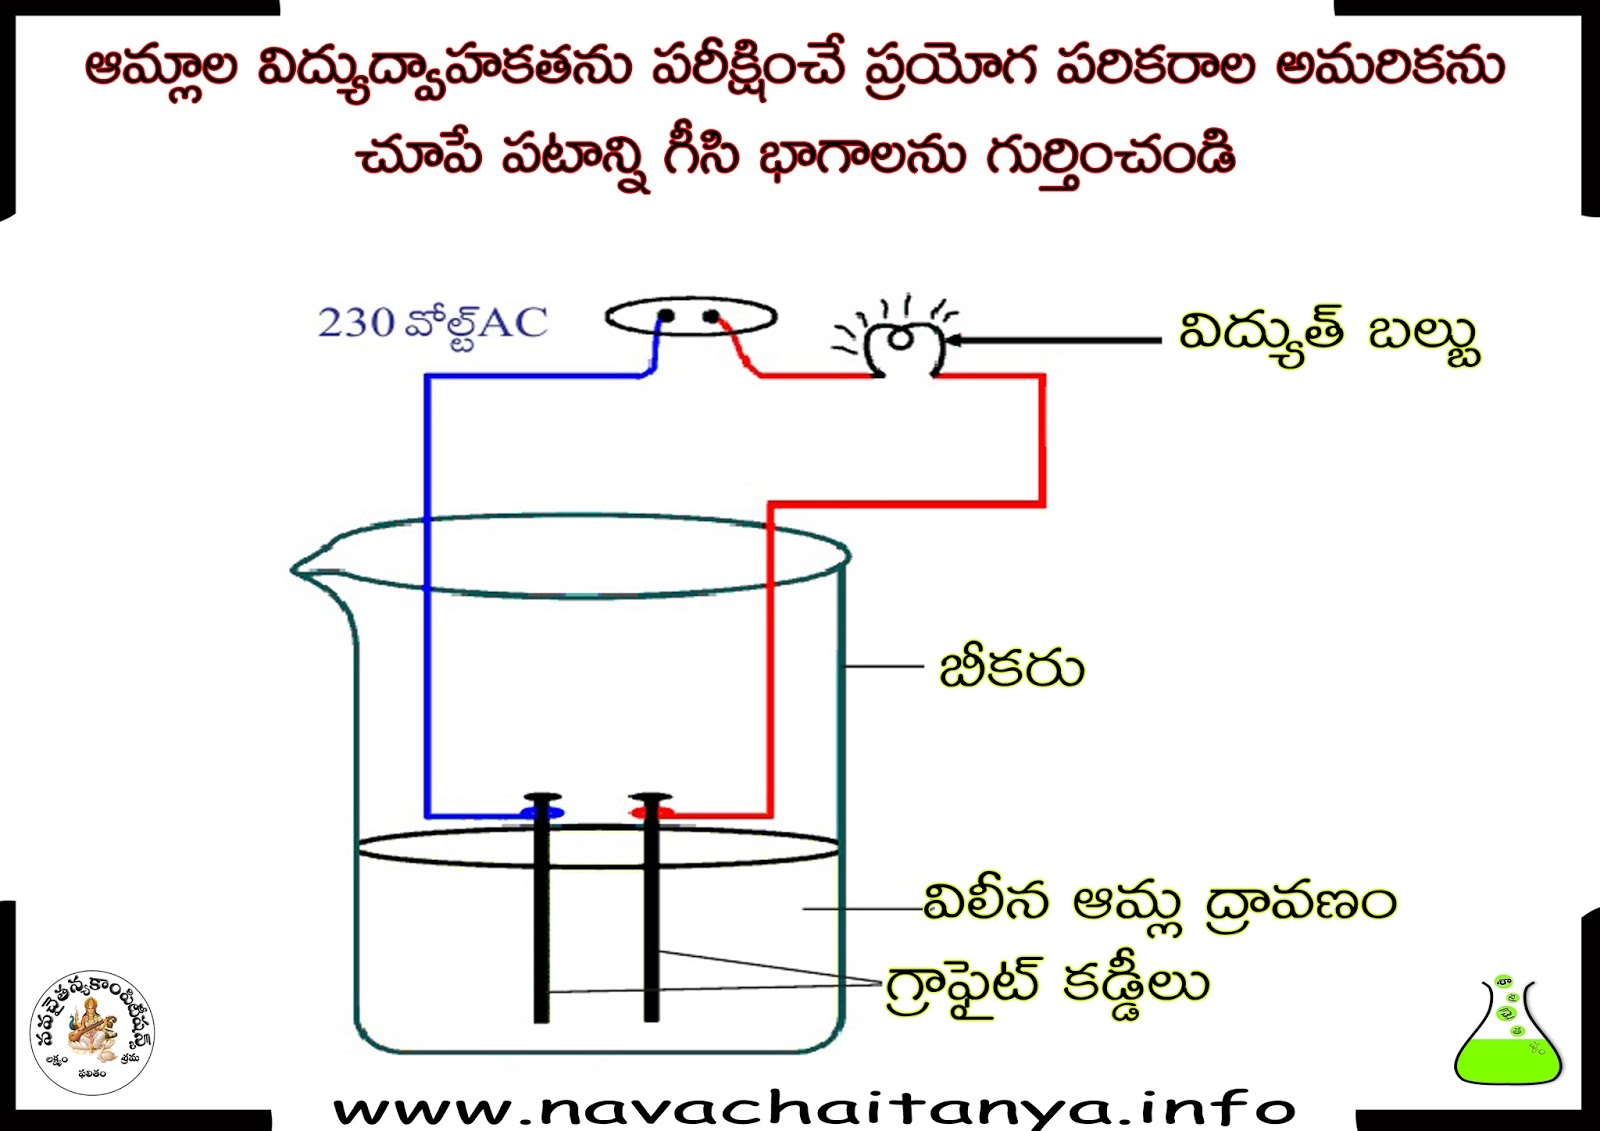 science diagrams for class 8 rj45 t568b wiring diagram 10th physical ఆమలల వదయదవహక